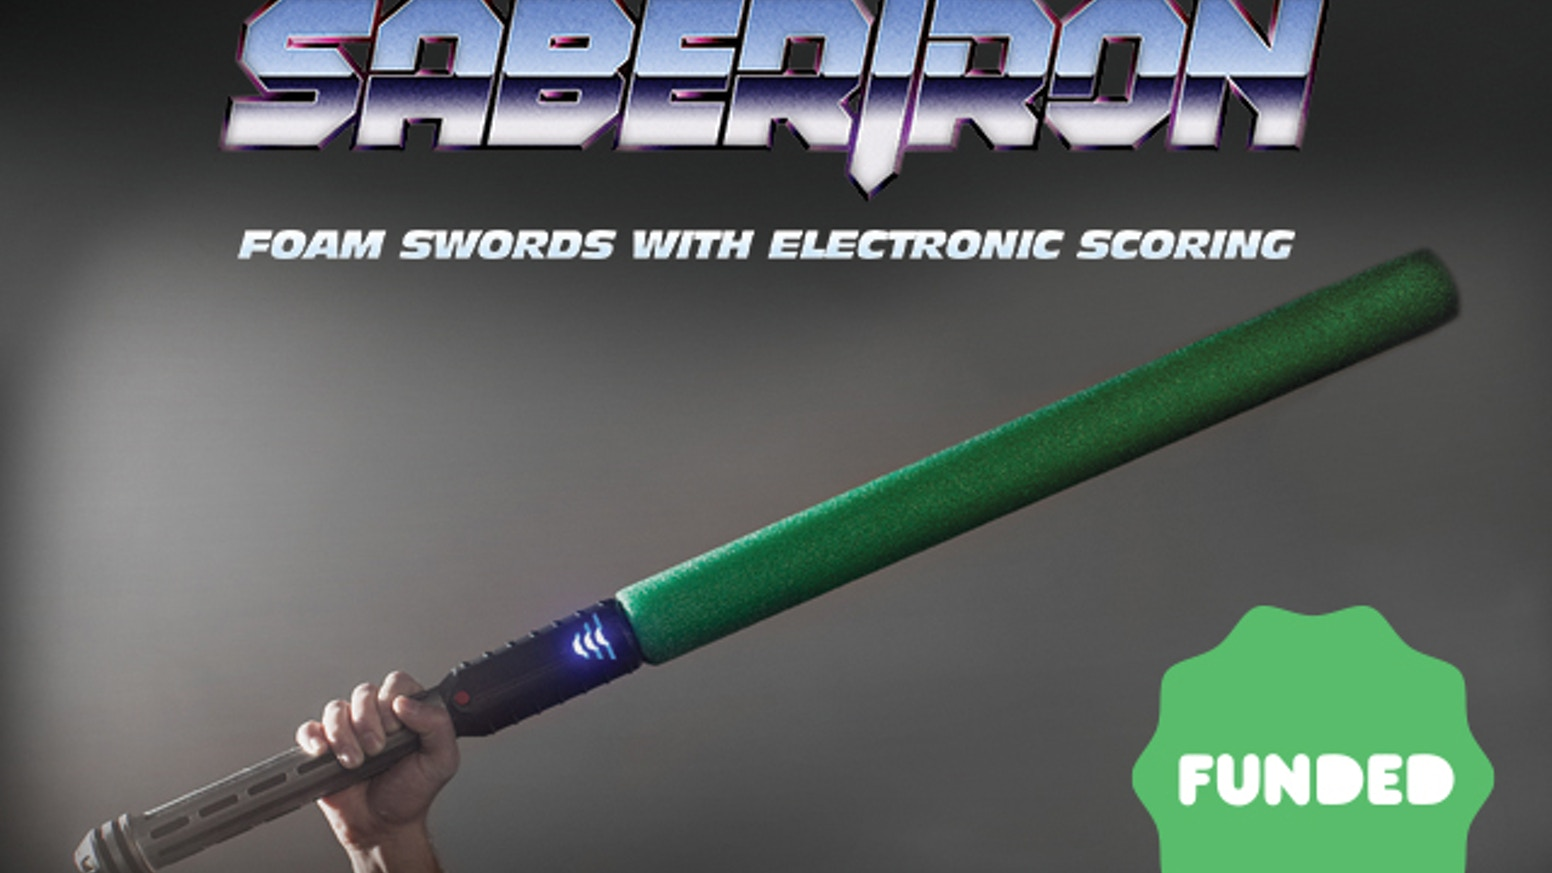 Sabertron: Foam Swords with Electronic Scoring by LevelUp